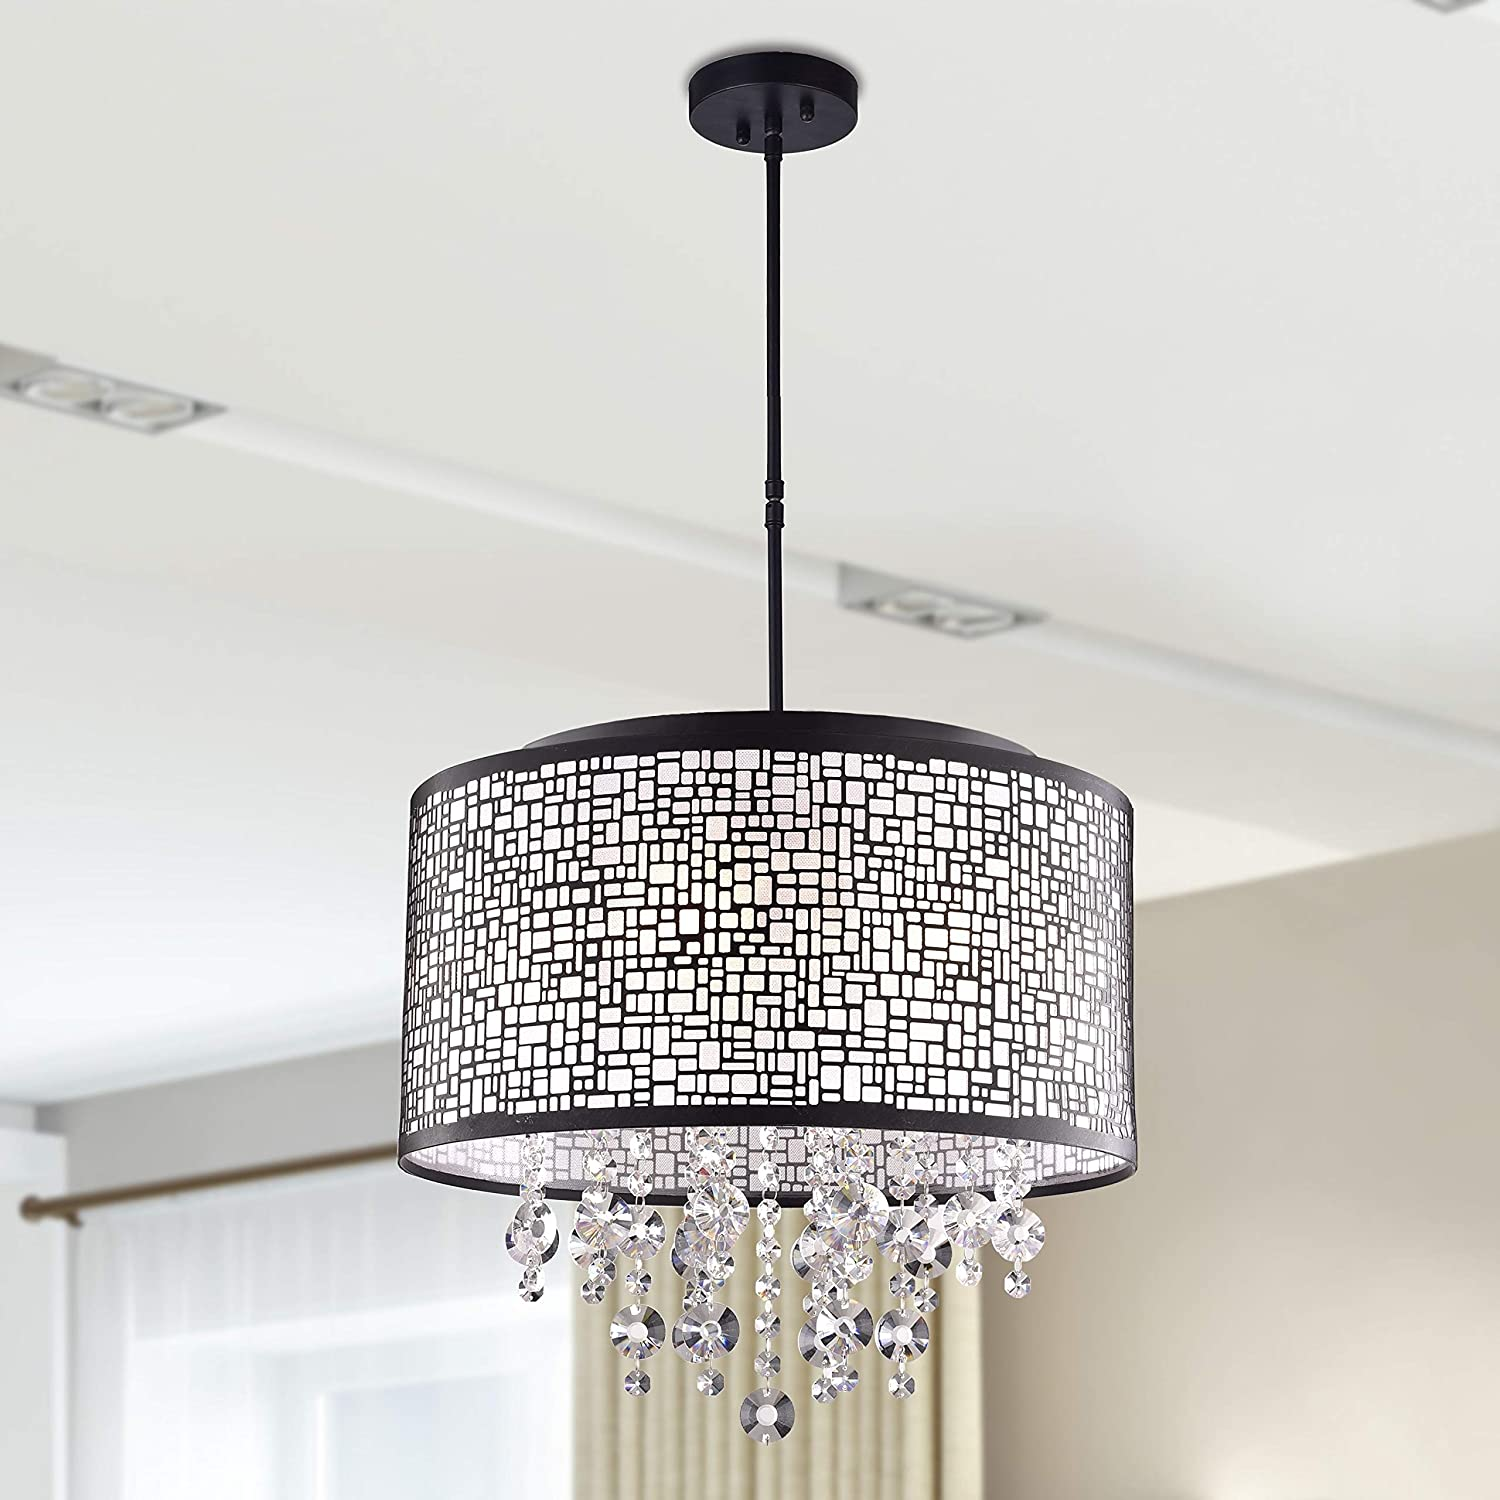 First Lighting Anais 4-Light Black Metal and Crystal Drum Chandelier